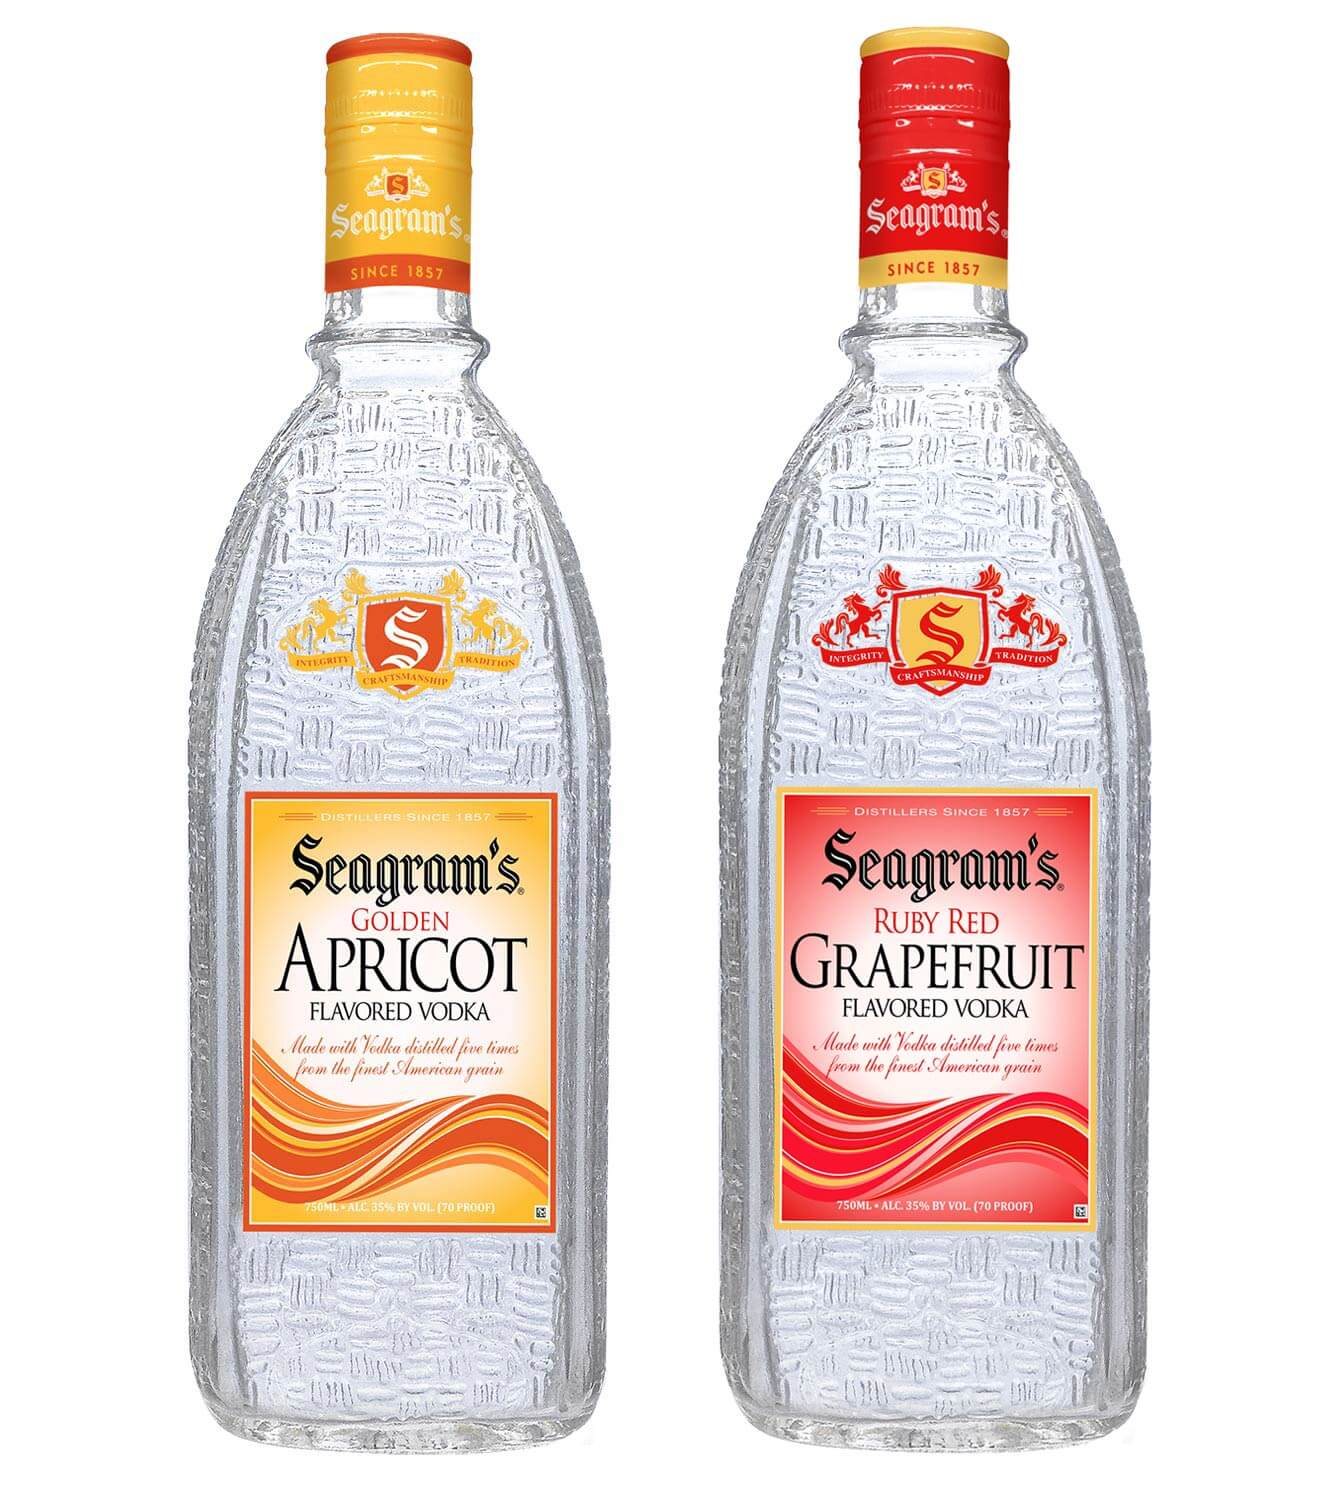 Seagram's Vodka Launches Golden Apricot and Ruby Red Grapefruit Flavored Vodka